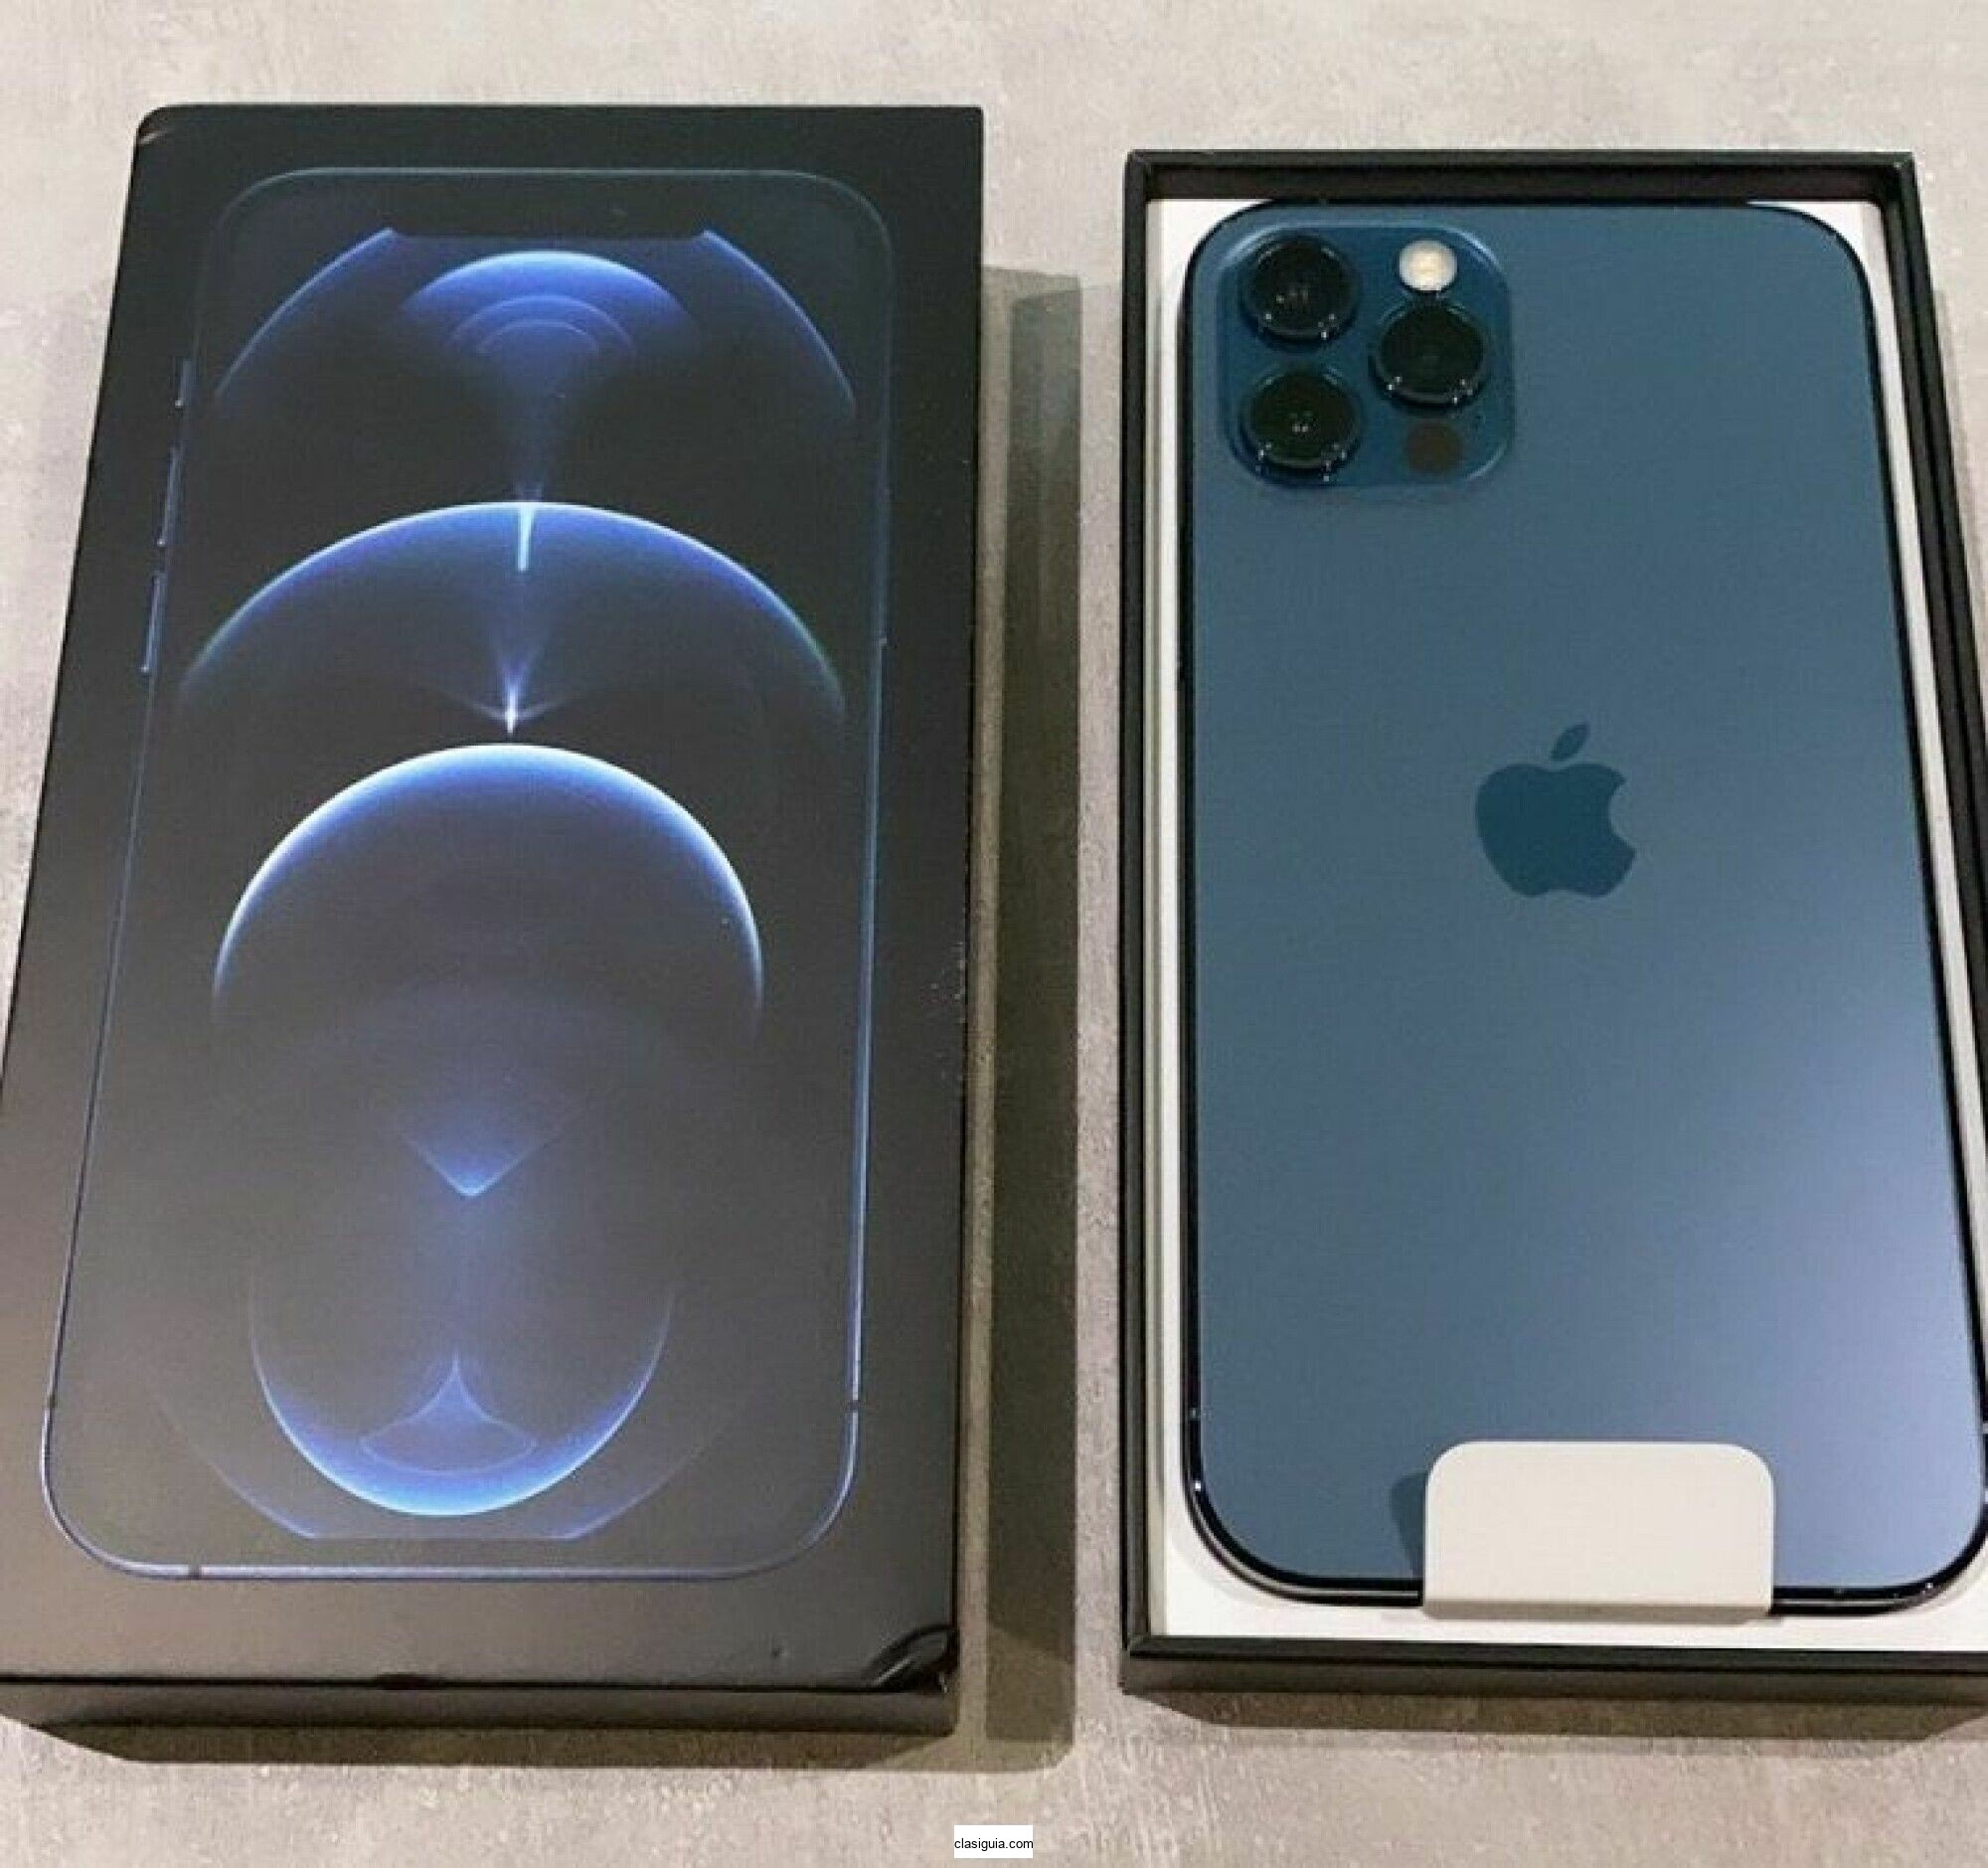 Compre Apple iPhone 12 Pro, iPhone 11 Pro 512GB Whatsapp Chat: +14157973620